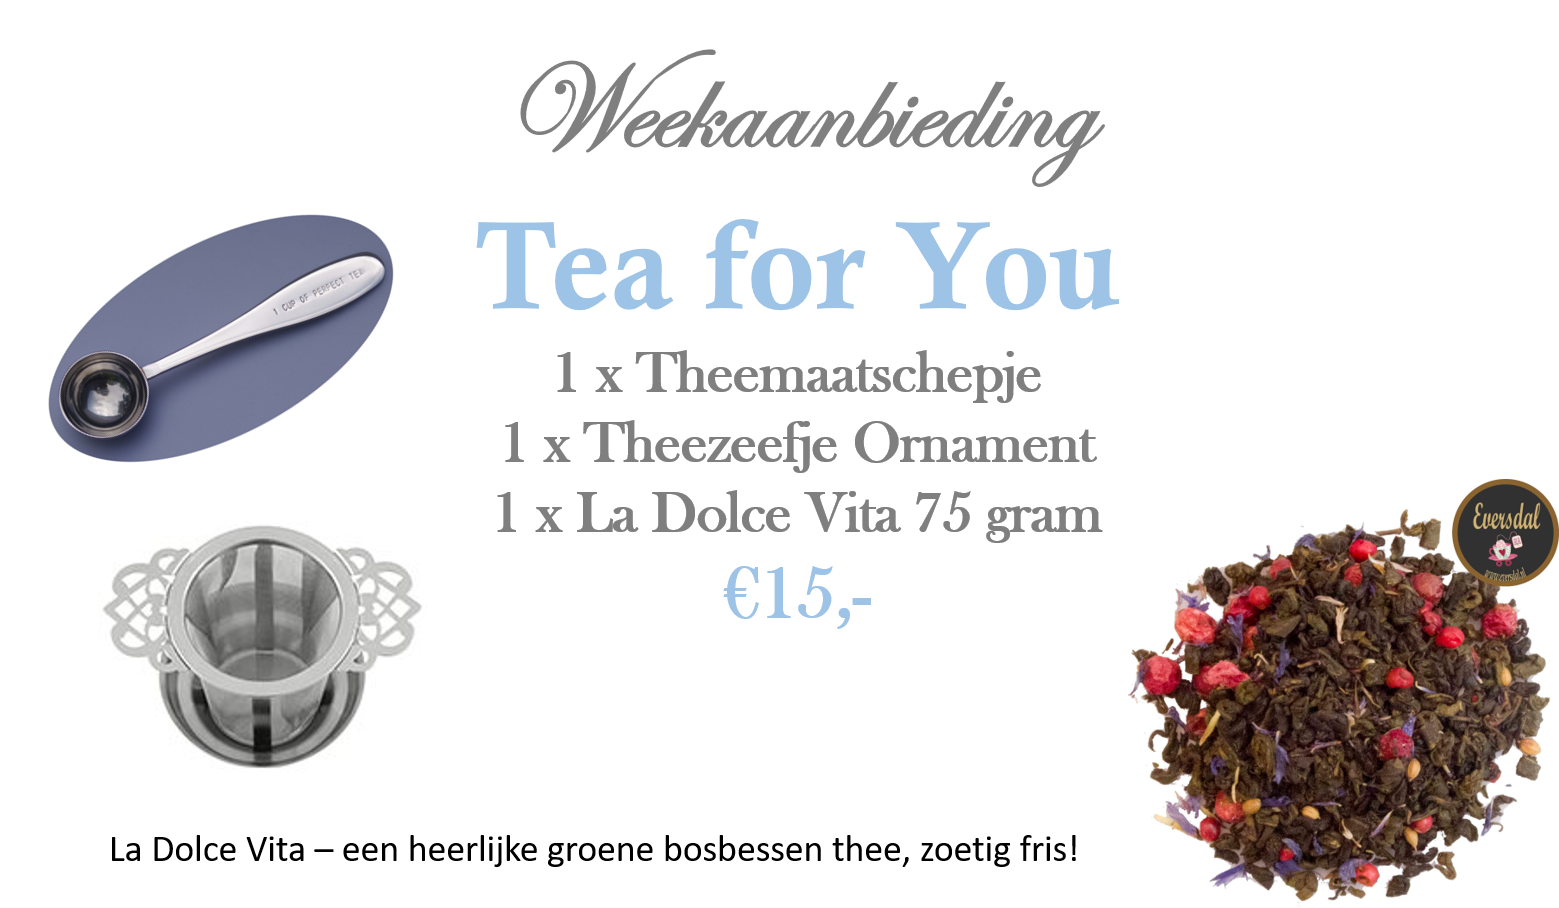 >> Weekaanbieding week 20 -  14 mei tot 21 mei 2021